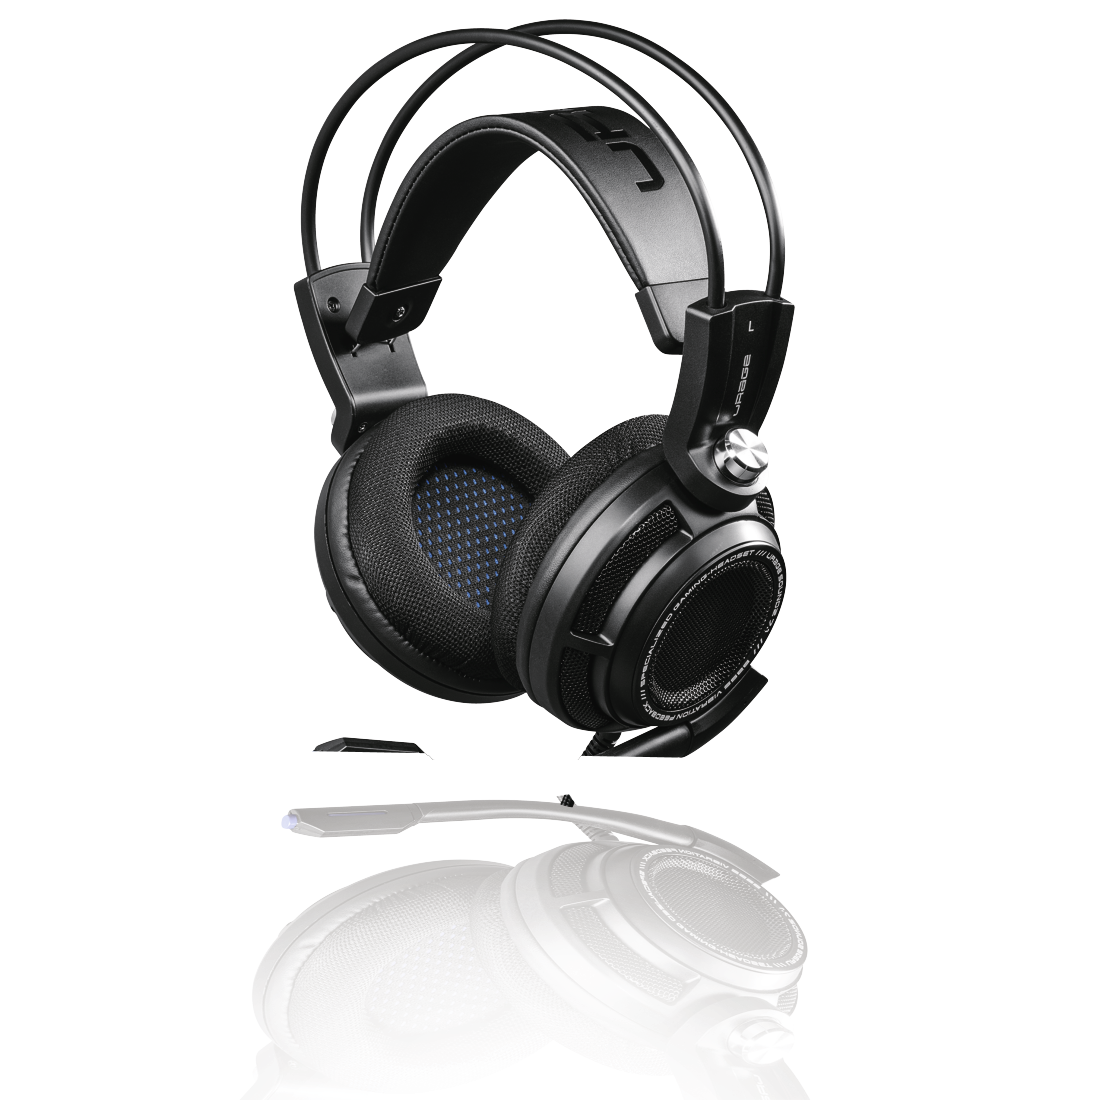 abx5 High-Res Image 5 - Hama, uRage SoundZ 7.1 Gaming Headset, black